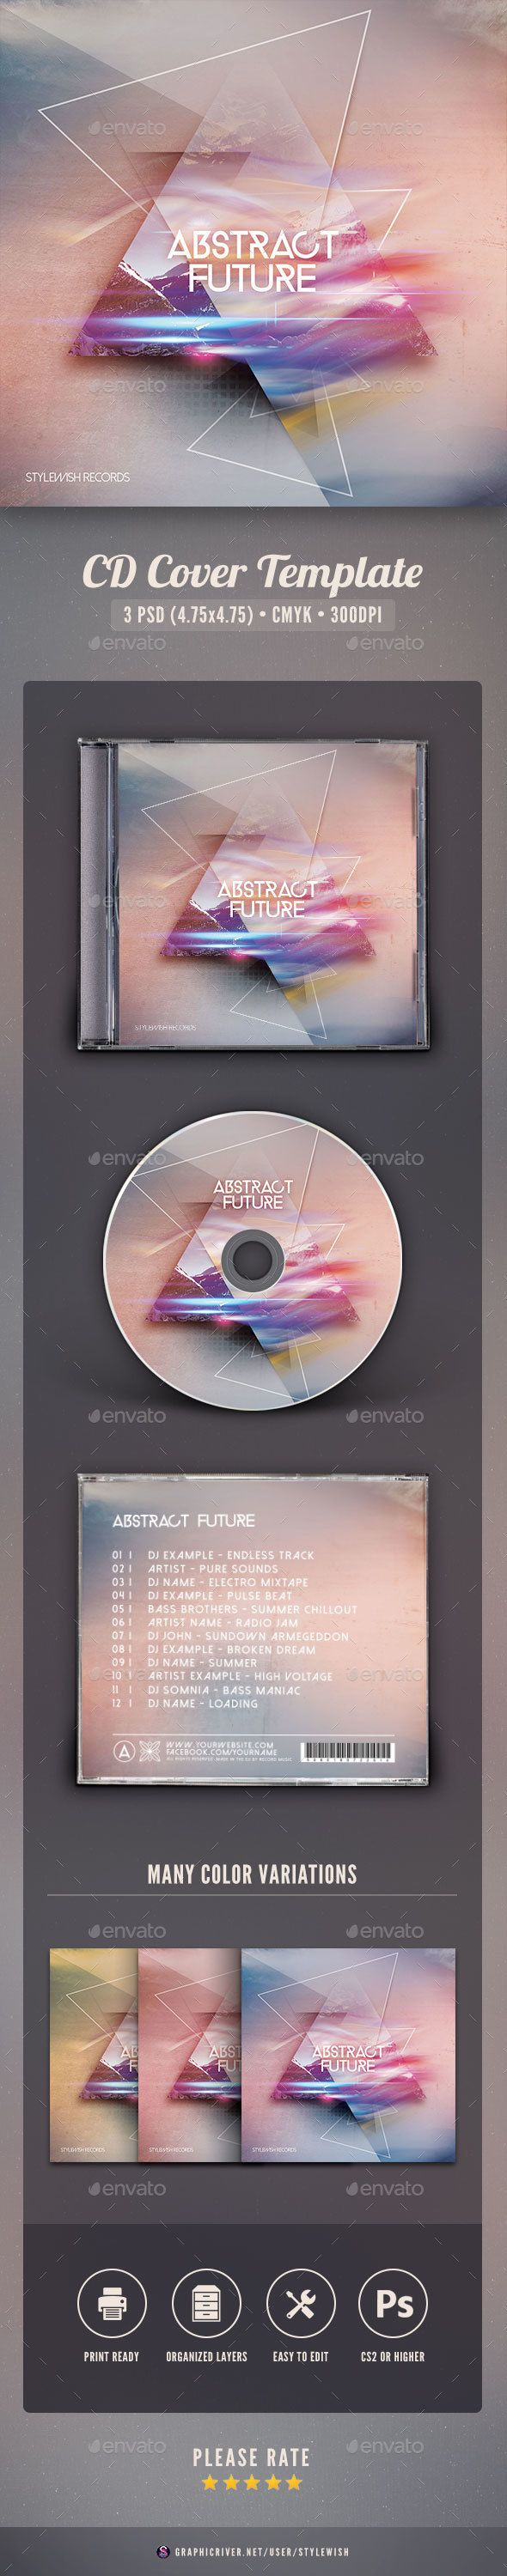 Abstract Future CD Cover Artwork  #progressive #geometry #PSD • Click here to download ! http://graphicriver.net/item/abstract-future-cd-cover-artwork/16150363?ref=pxcr